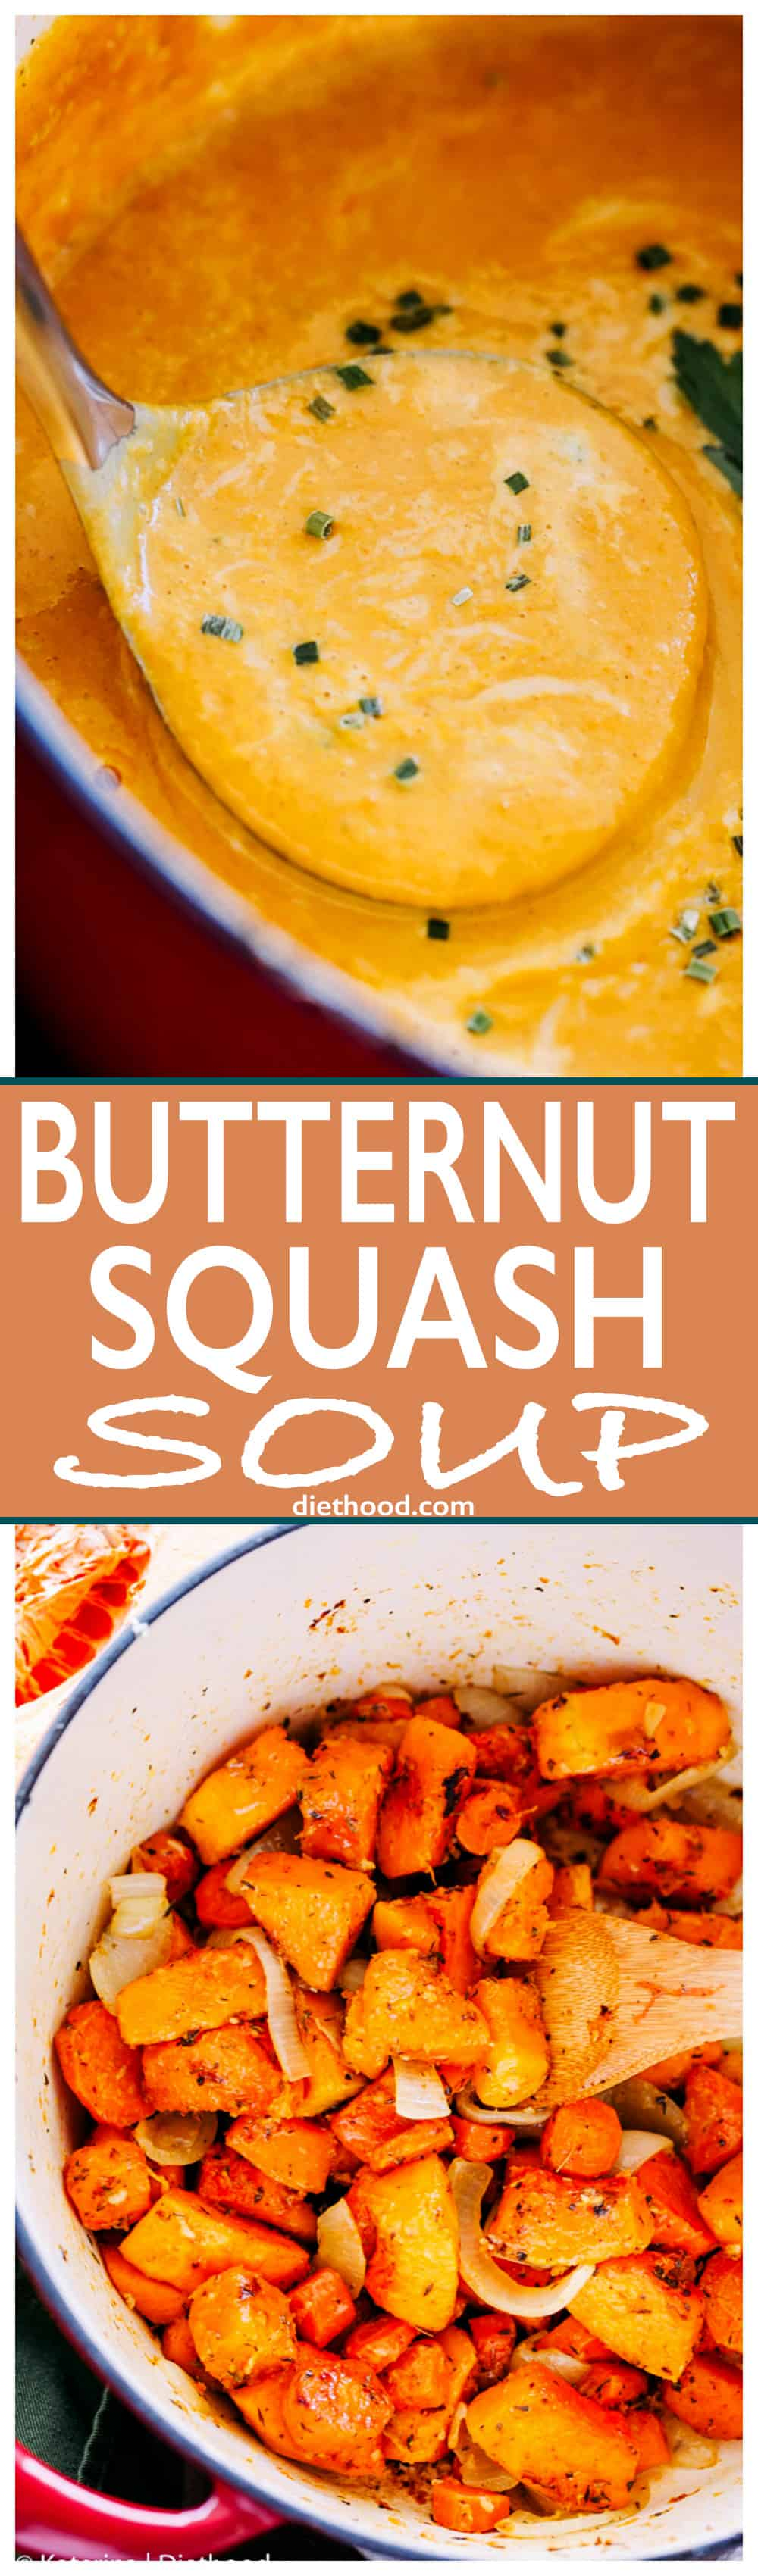 Butternut Squash Soup - Simple, the BEST EVER #butternut_squash soup! You're just a few ingredients away from this incredibly delicious, comforting, and #healthy #soup.